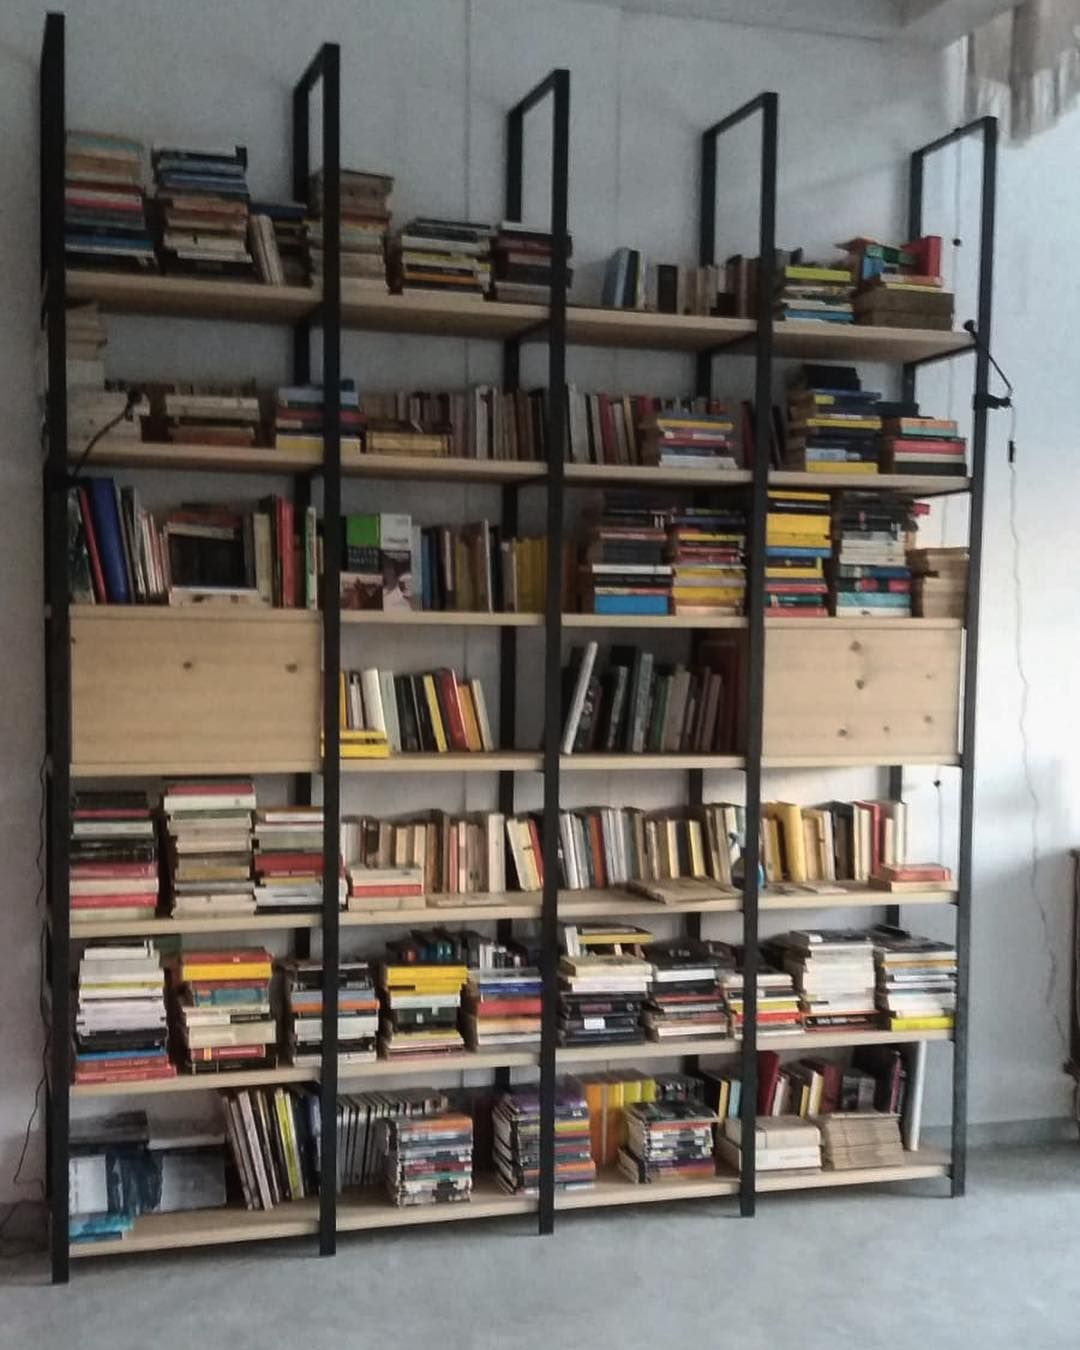 Oxhome On Instagram Libreria 1 0 Design Francesco Margari Design